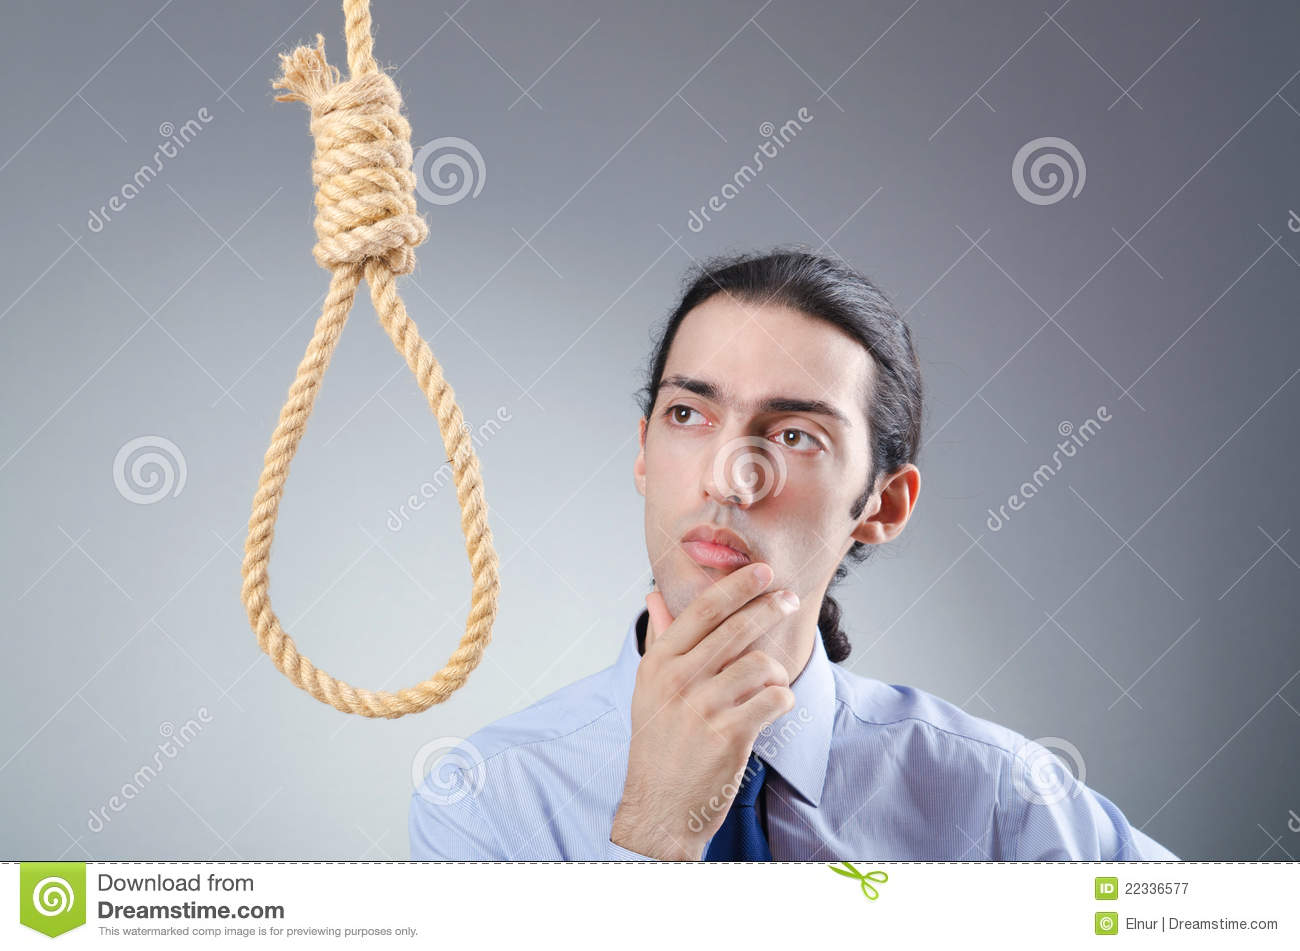 Man with noose - considering suicide meme